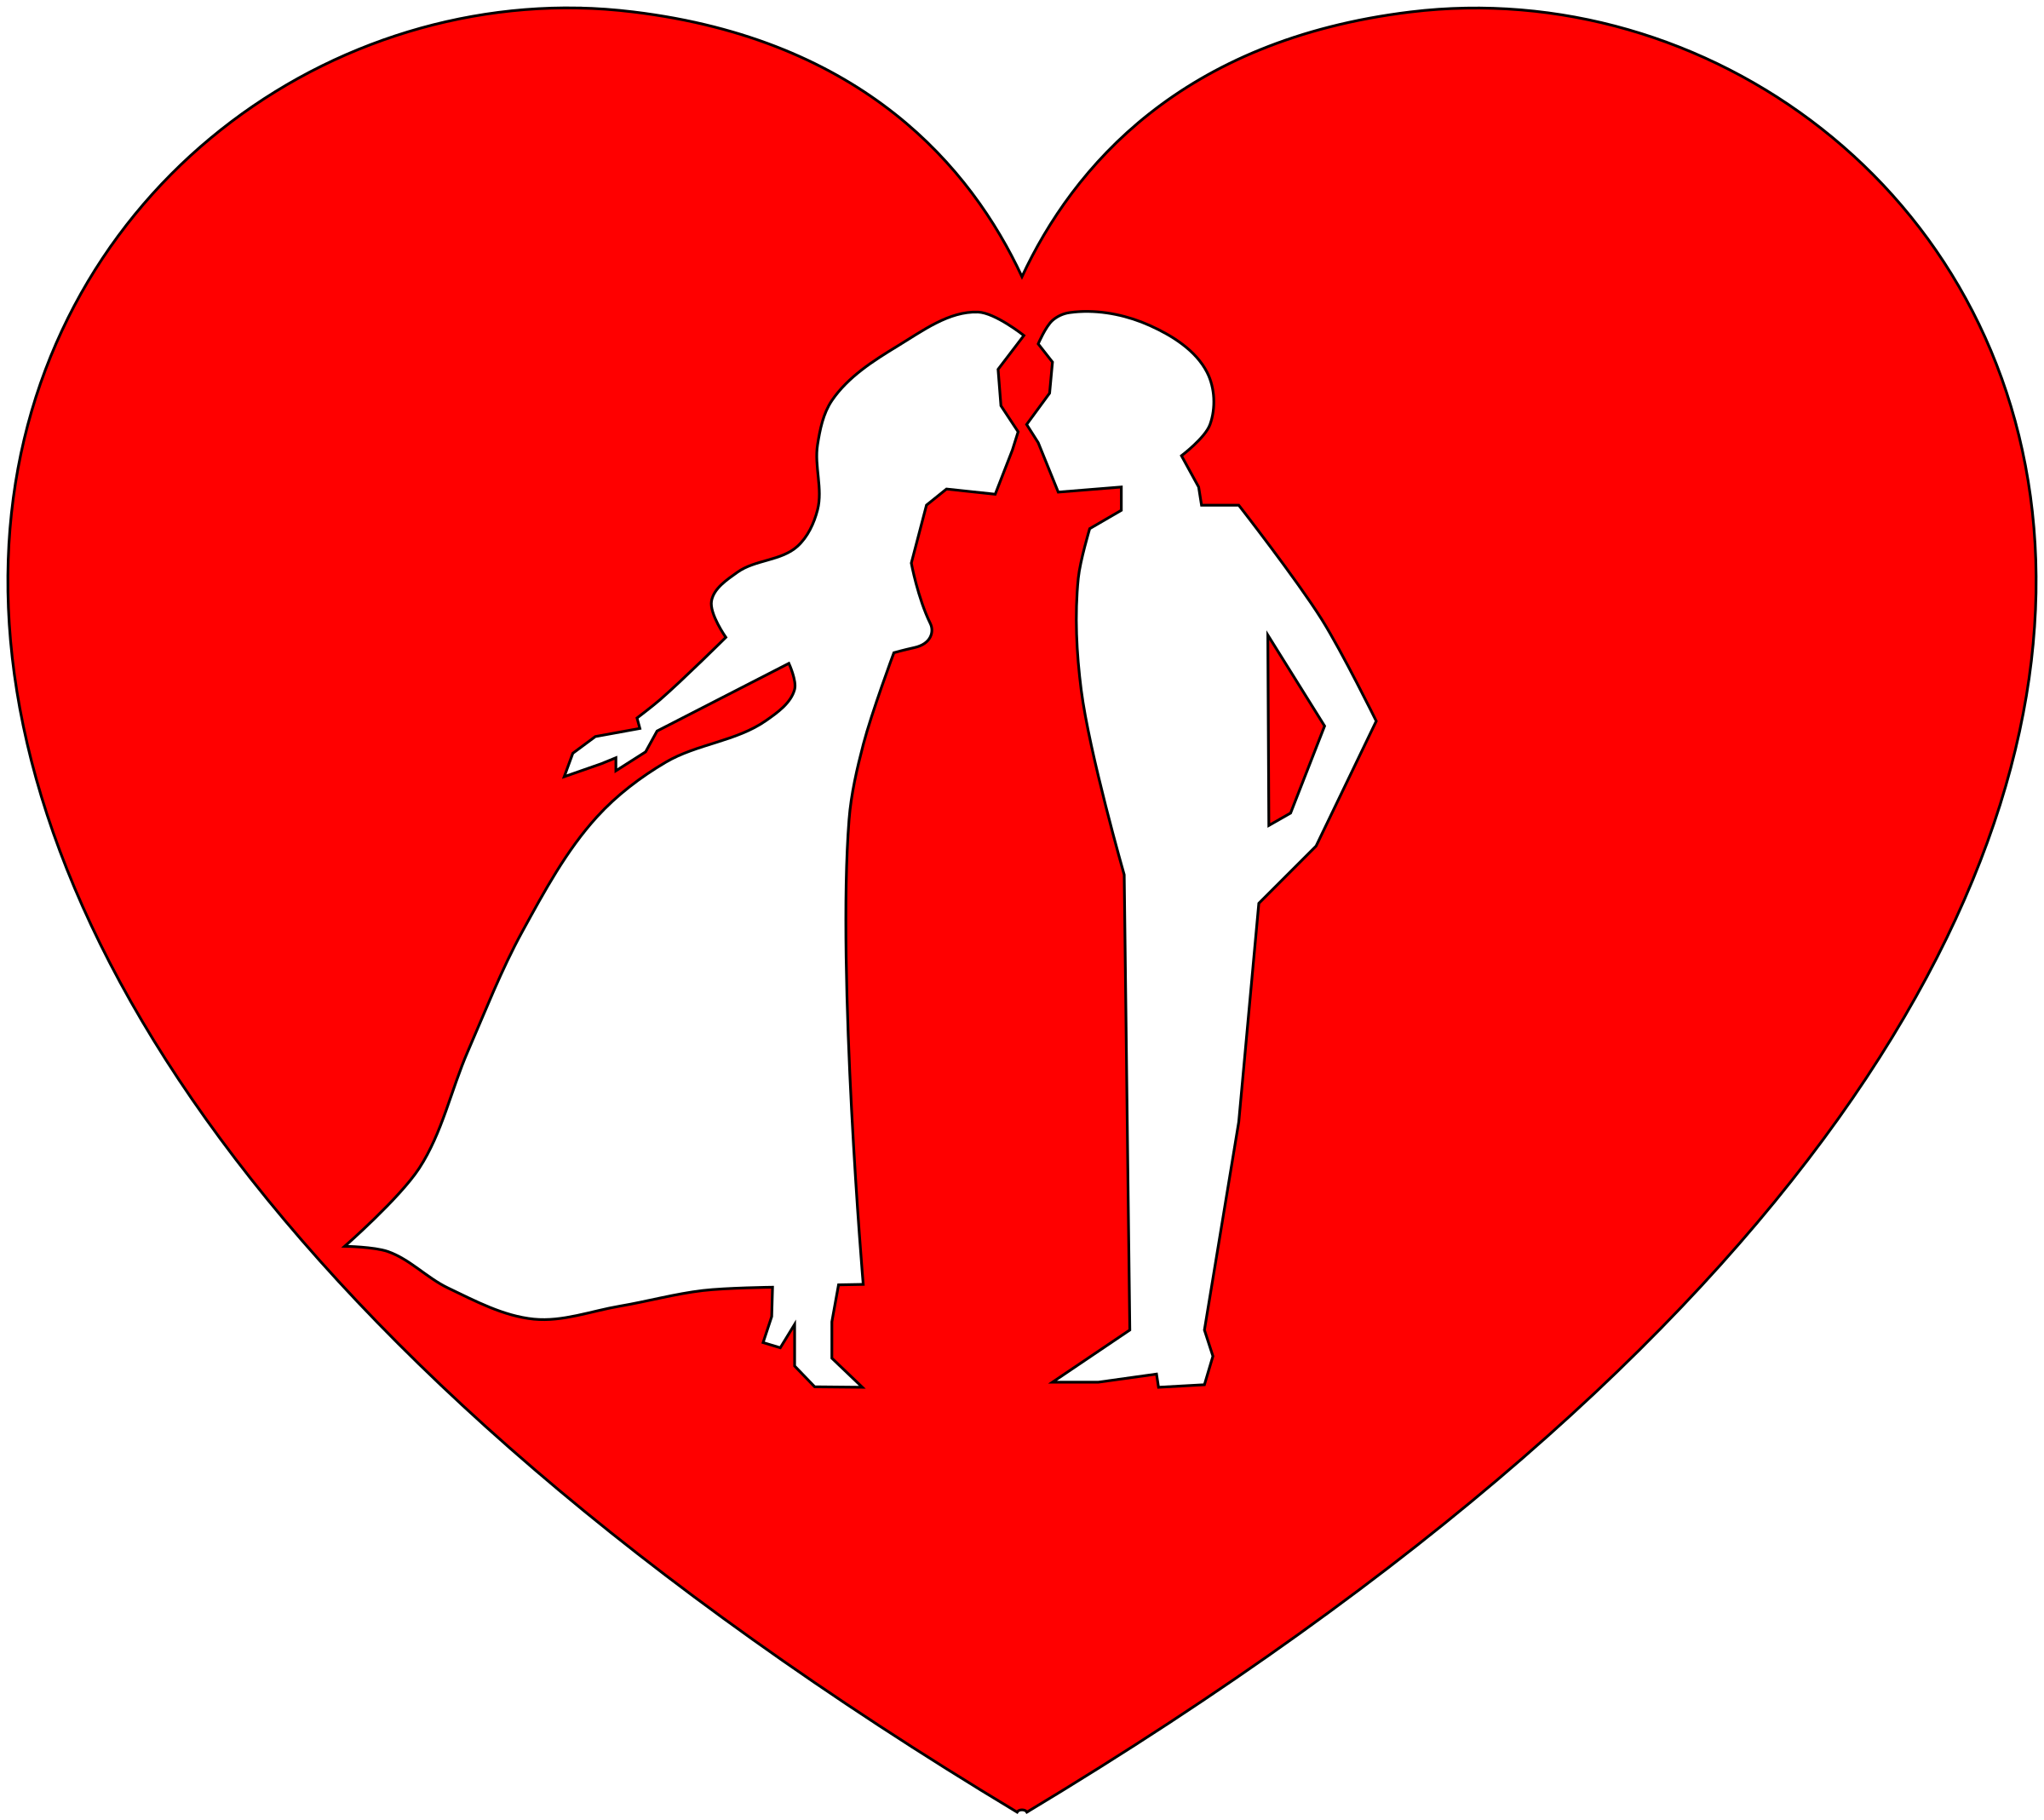 Heart, png couple. In heart icons free